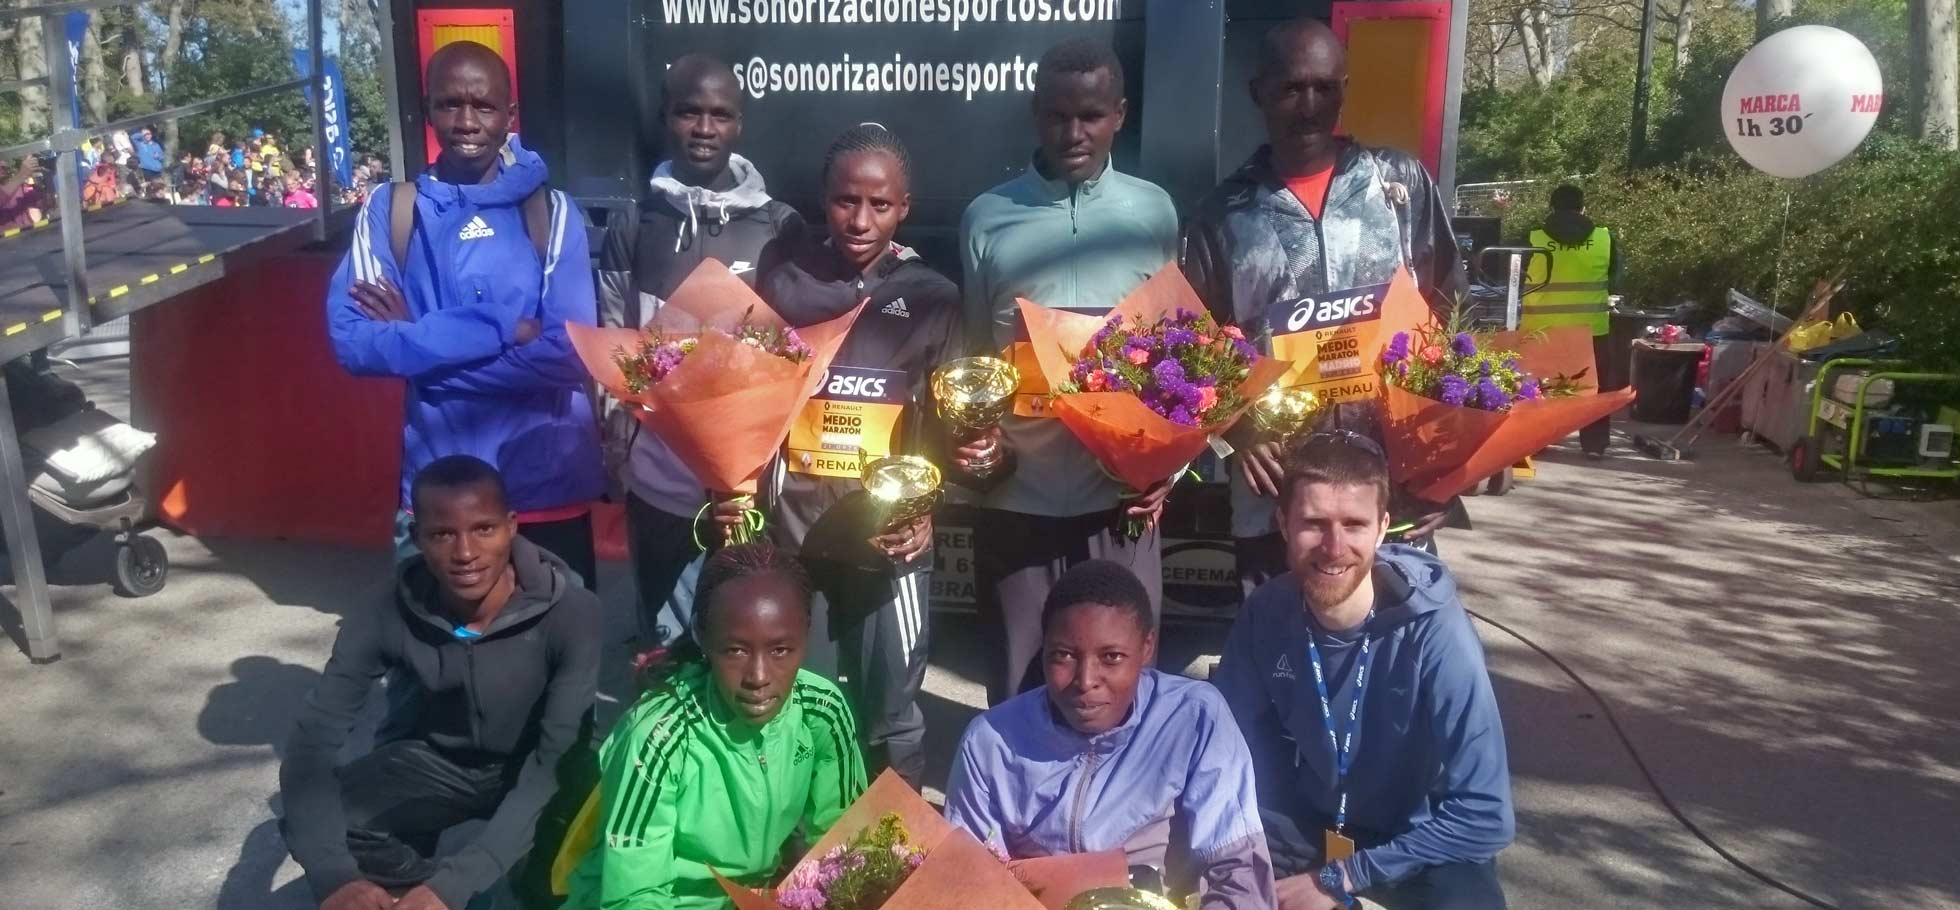 TEAM RUN-FAST athletes Collect four trophies in madrid